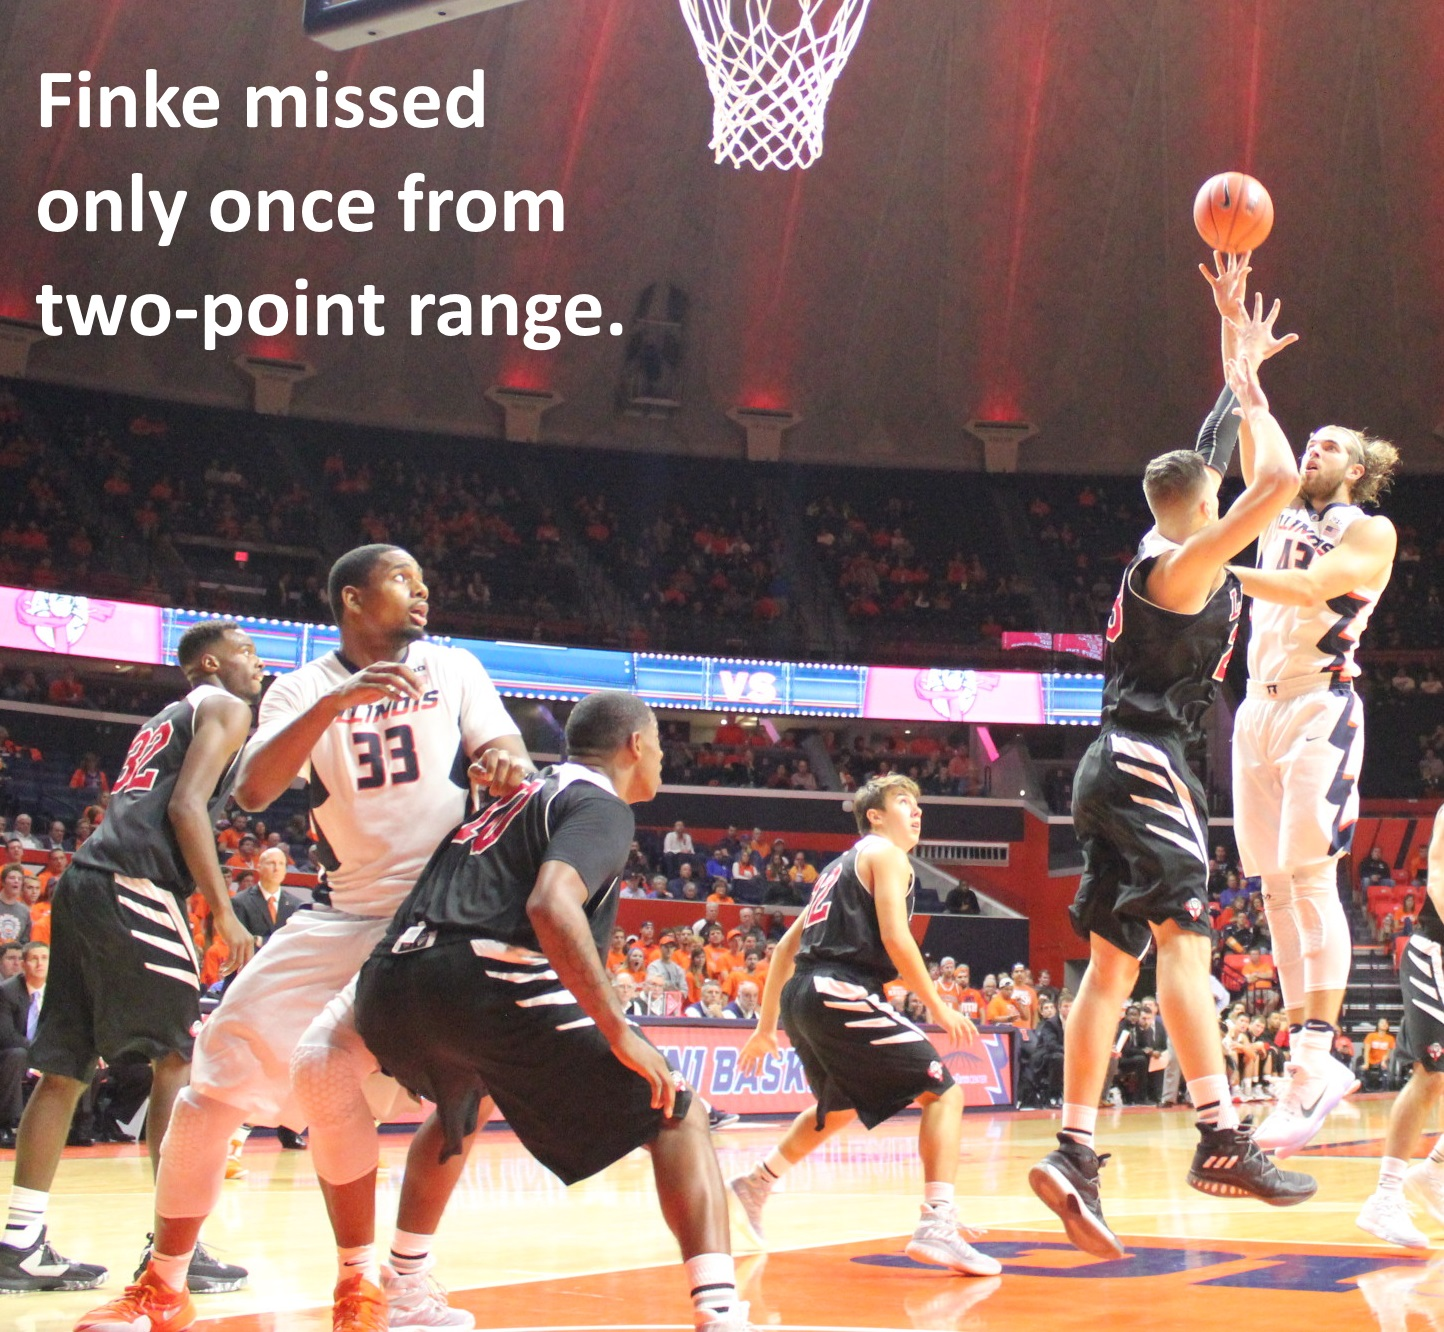 michael-finke-missed-only-once-from-two-point-range